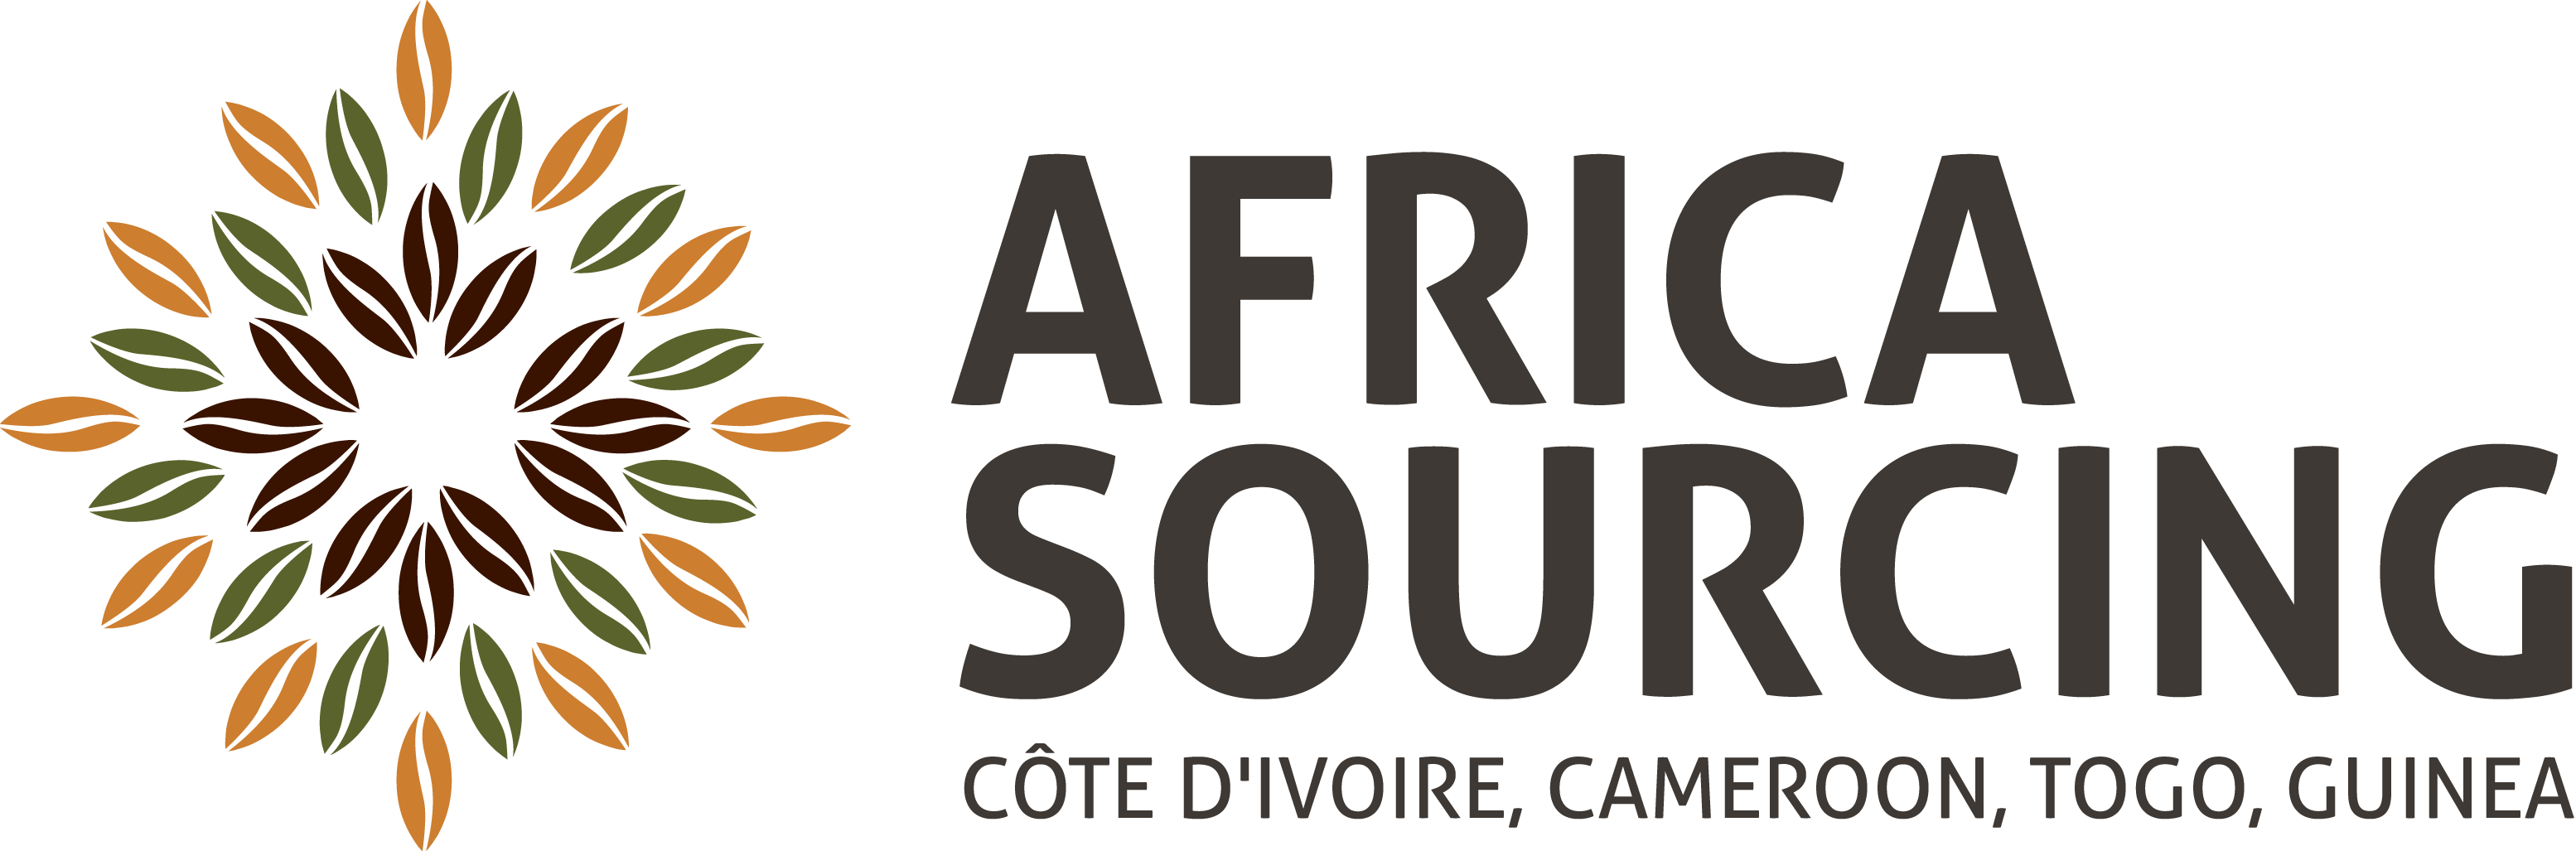 Africa Sourcing logo